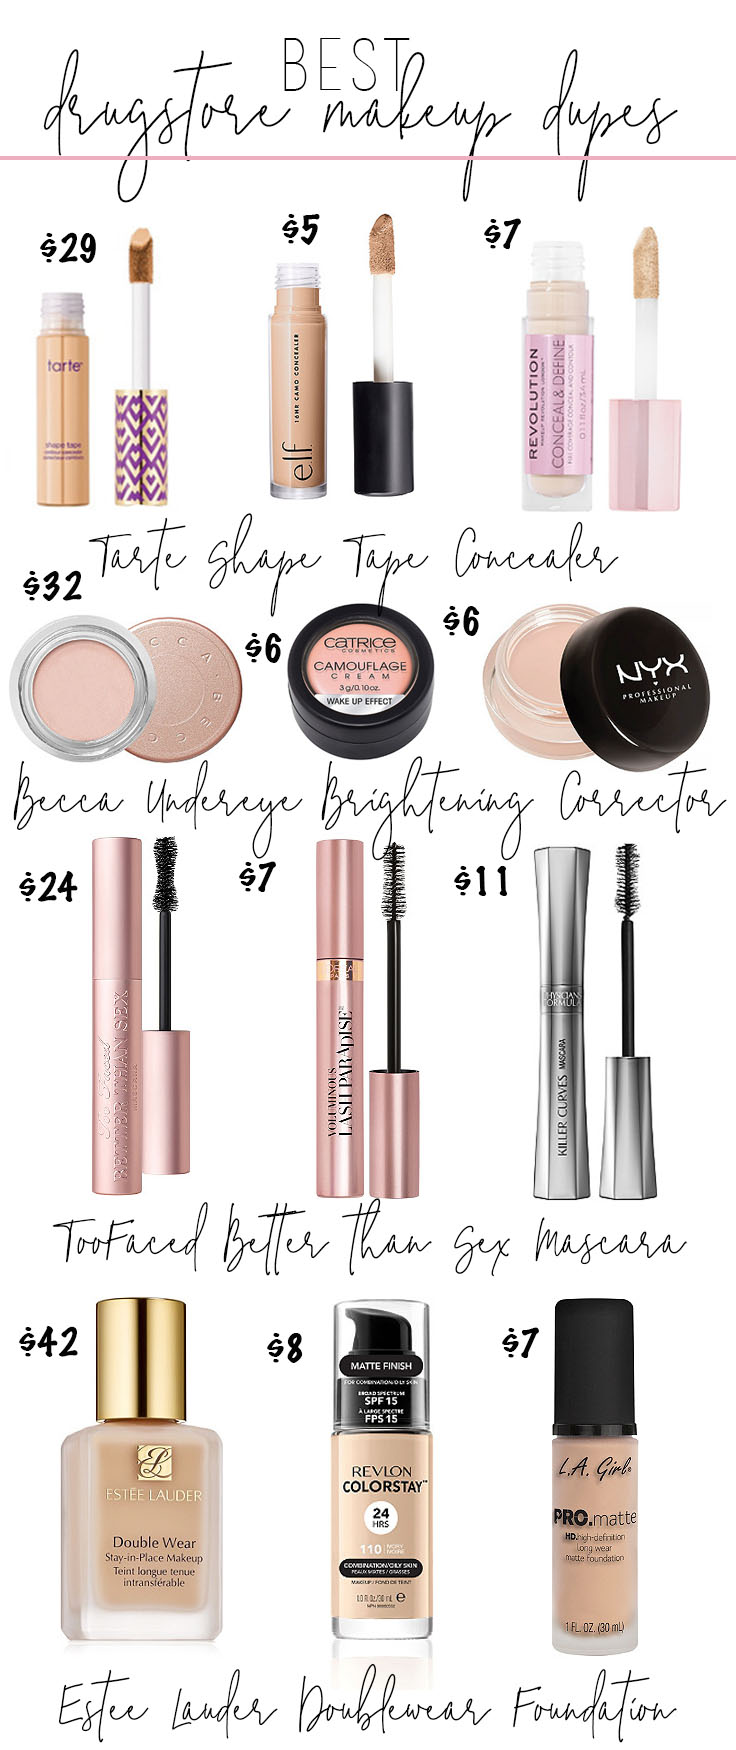 Best Drugstore Makeup 2019 Best Makeup Dupes From the Drugstore • Drugstore Makeup Dupes